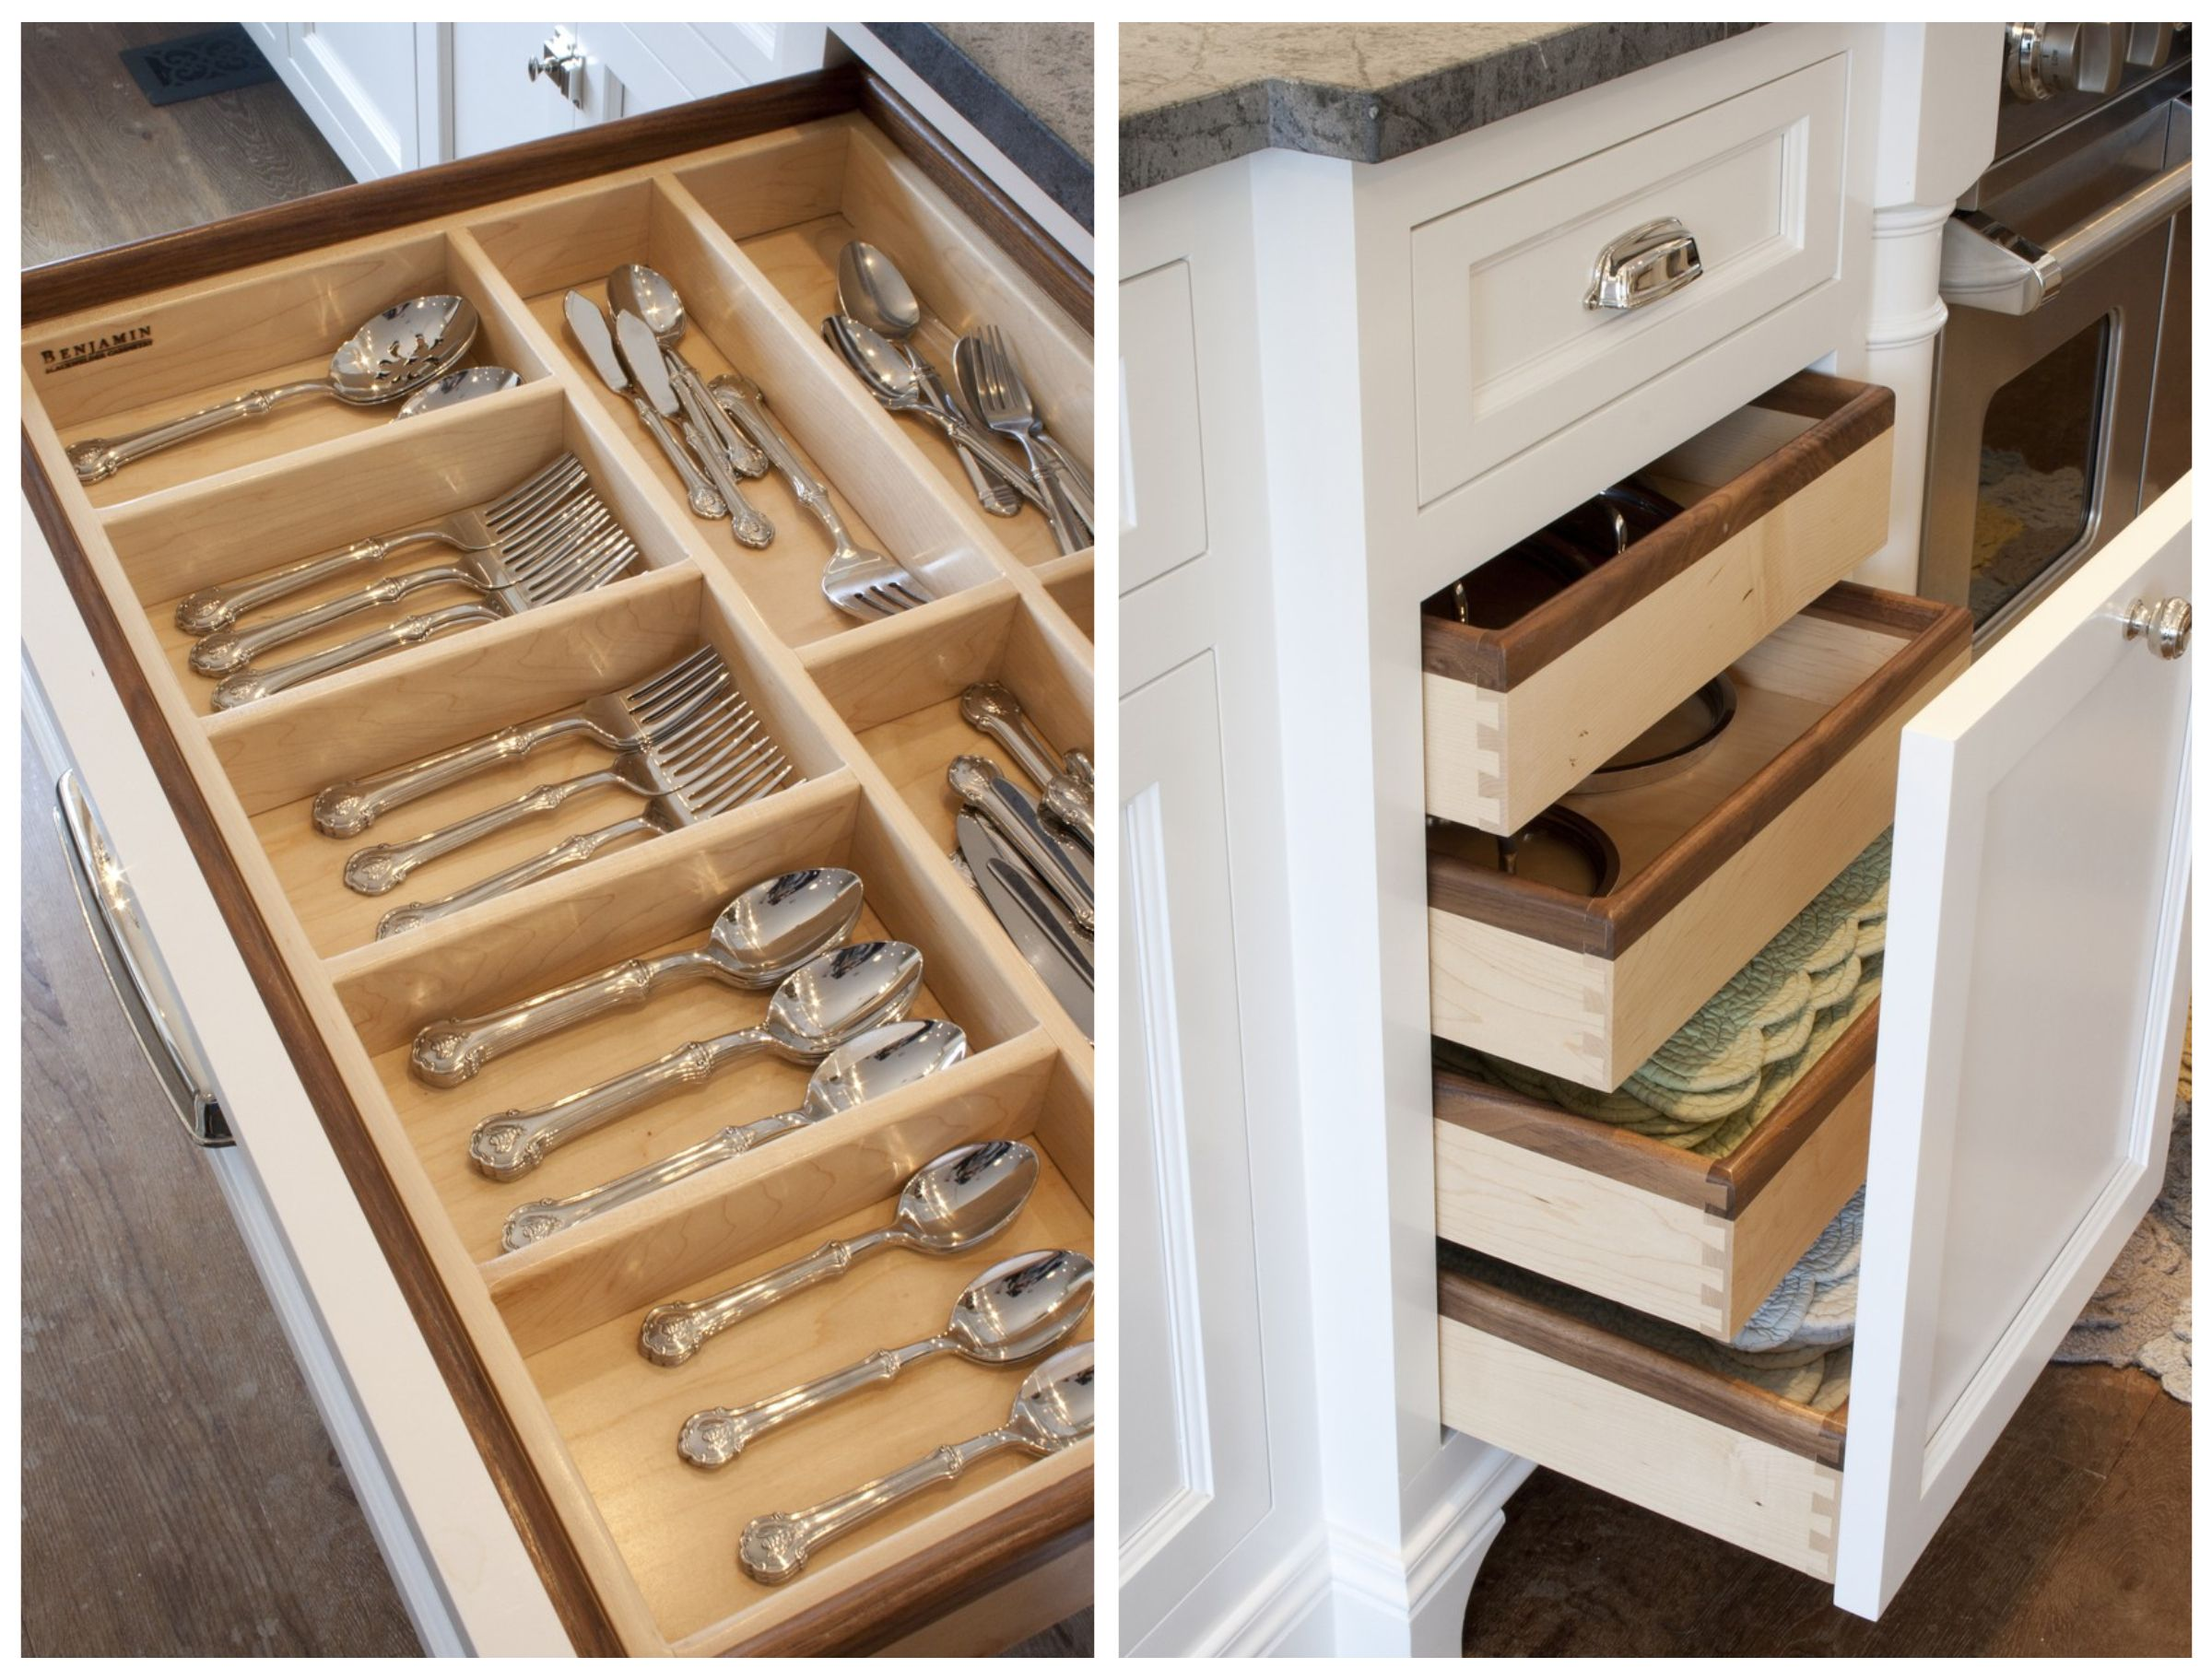 Tin bread box drawer insert - I Want These Drawers